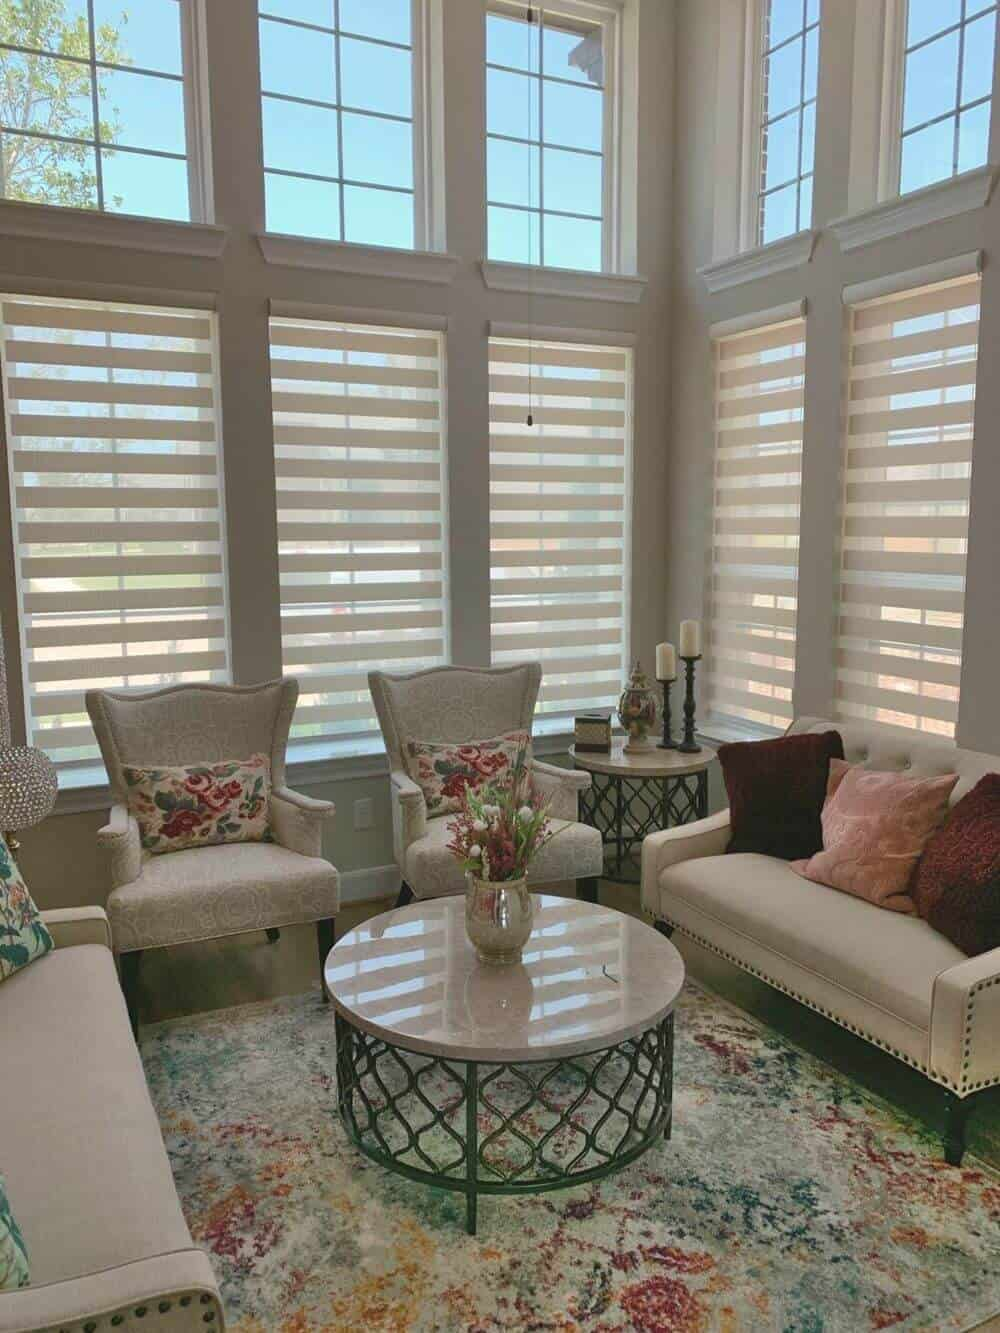 A living space featuring a classy sofa set and a gorgeous center table on top of an area rug covering the hardwood flooring. The home has a tall ceiling and windows with transitional shades.